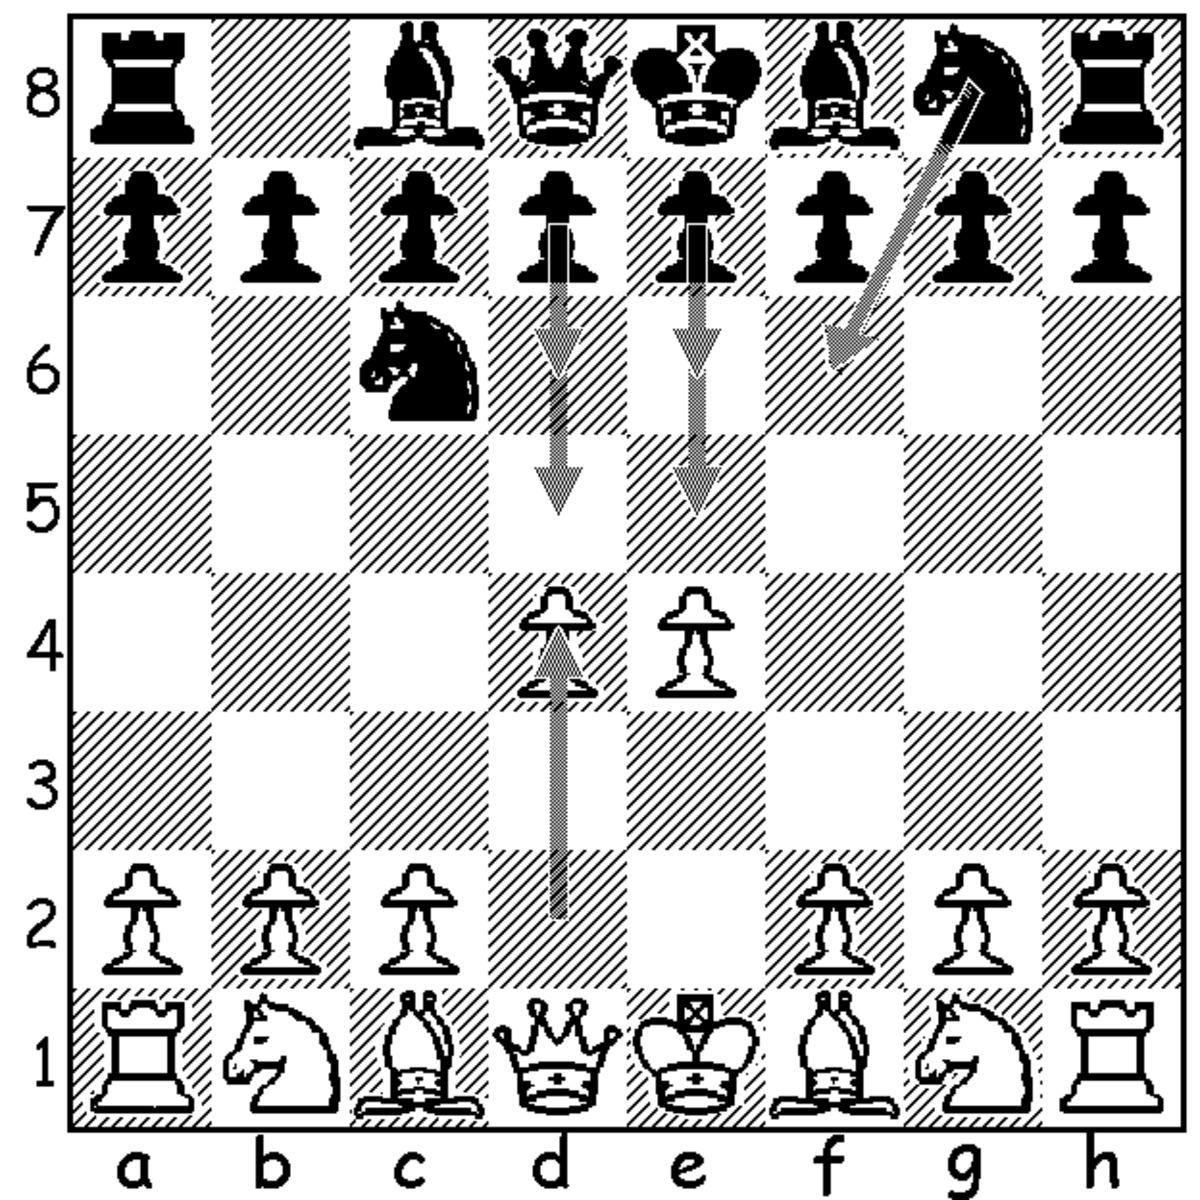 Chess Openings: A Simple and Complete Repertoire for White Against the Nimzovich Defense (1.e4 Nc6)